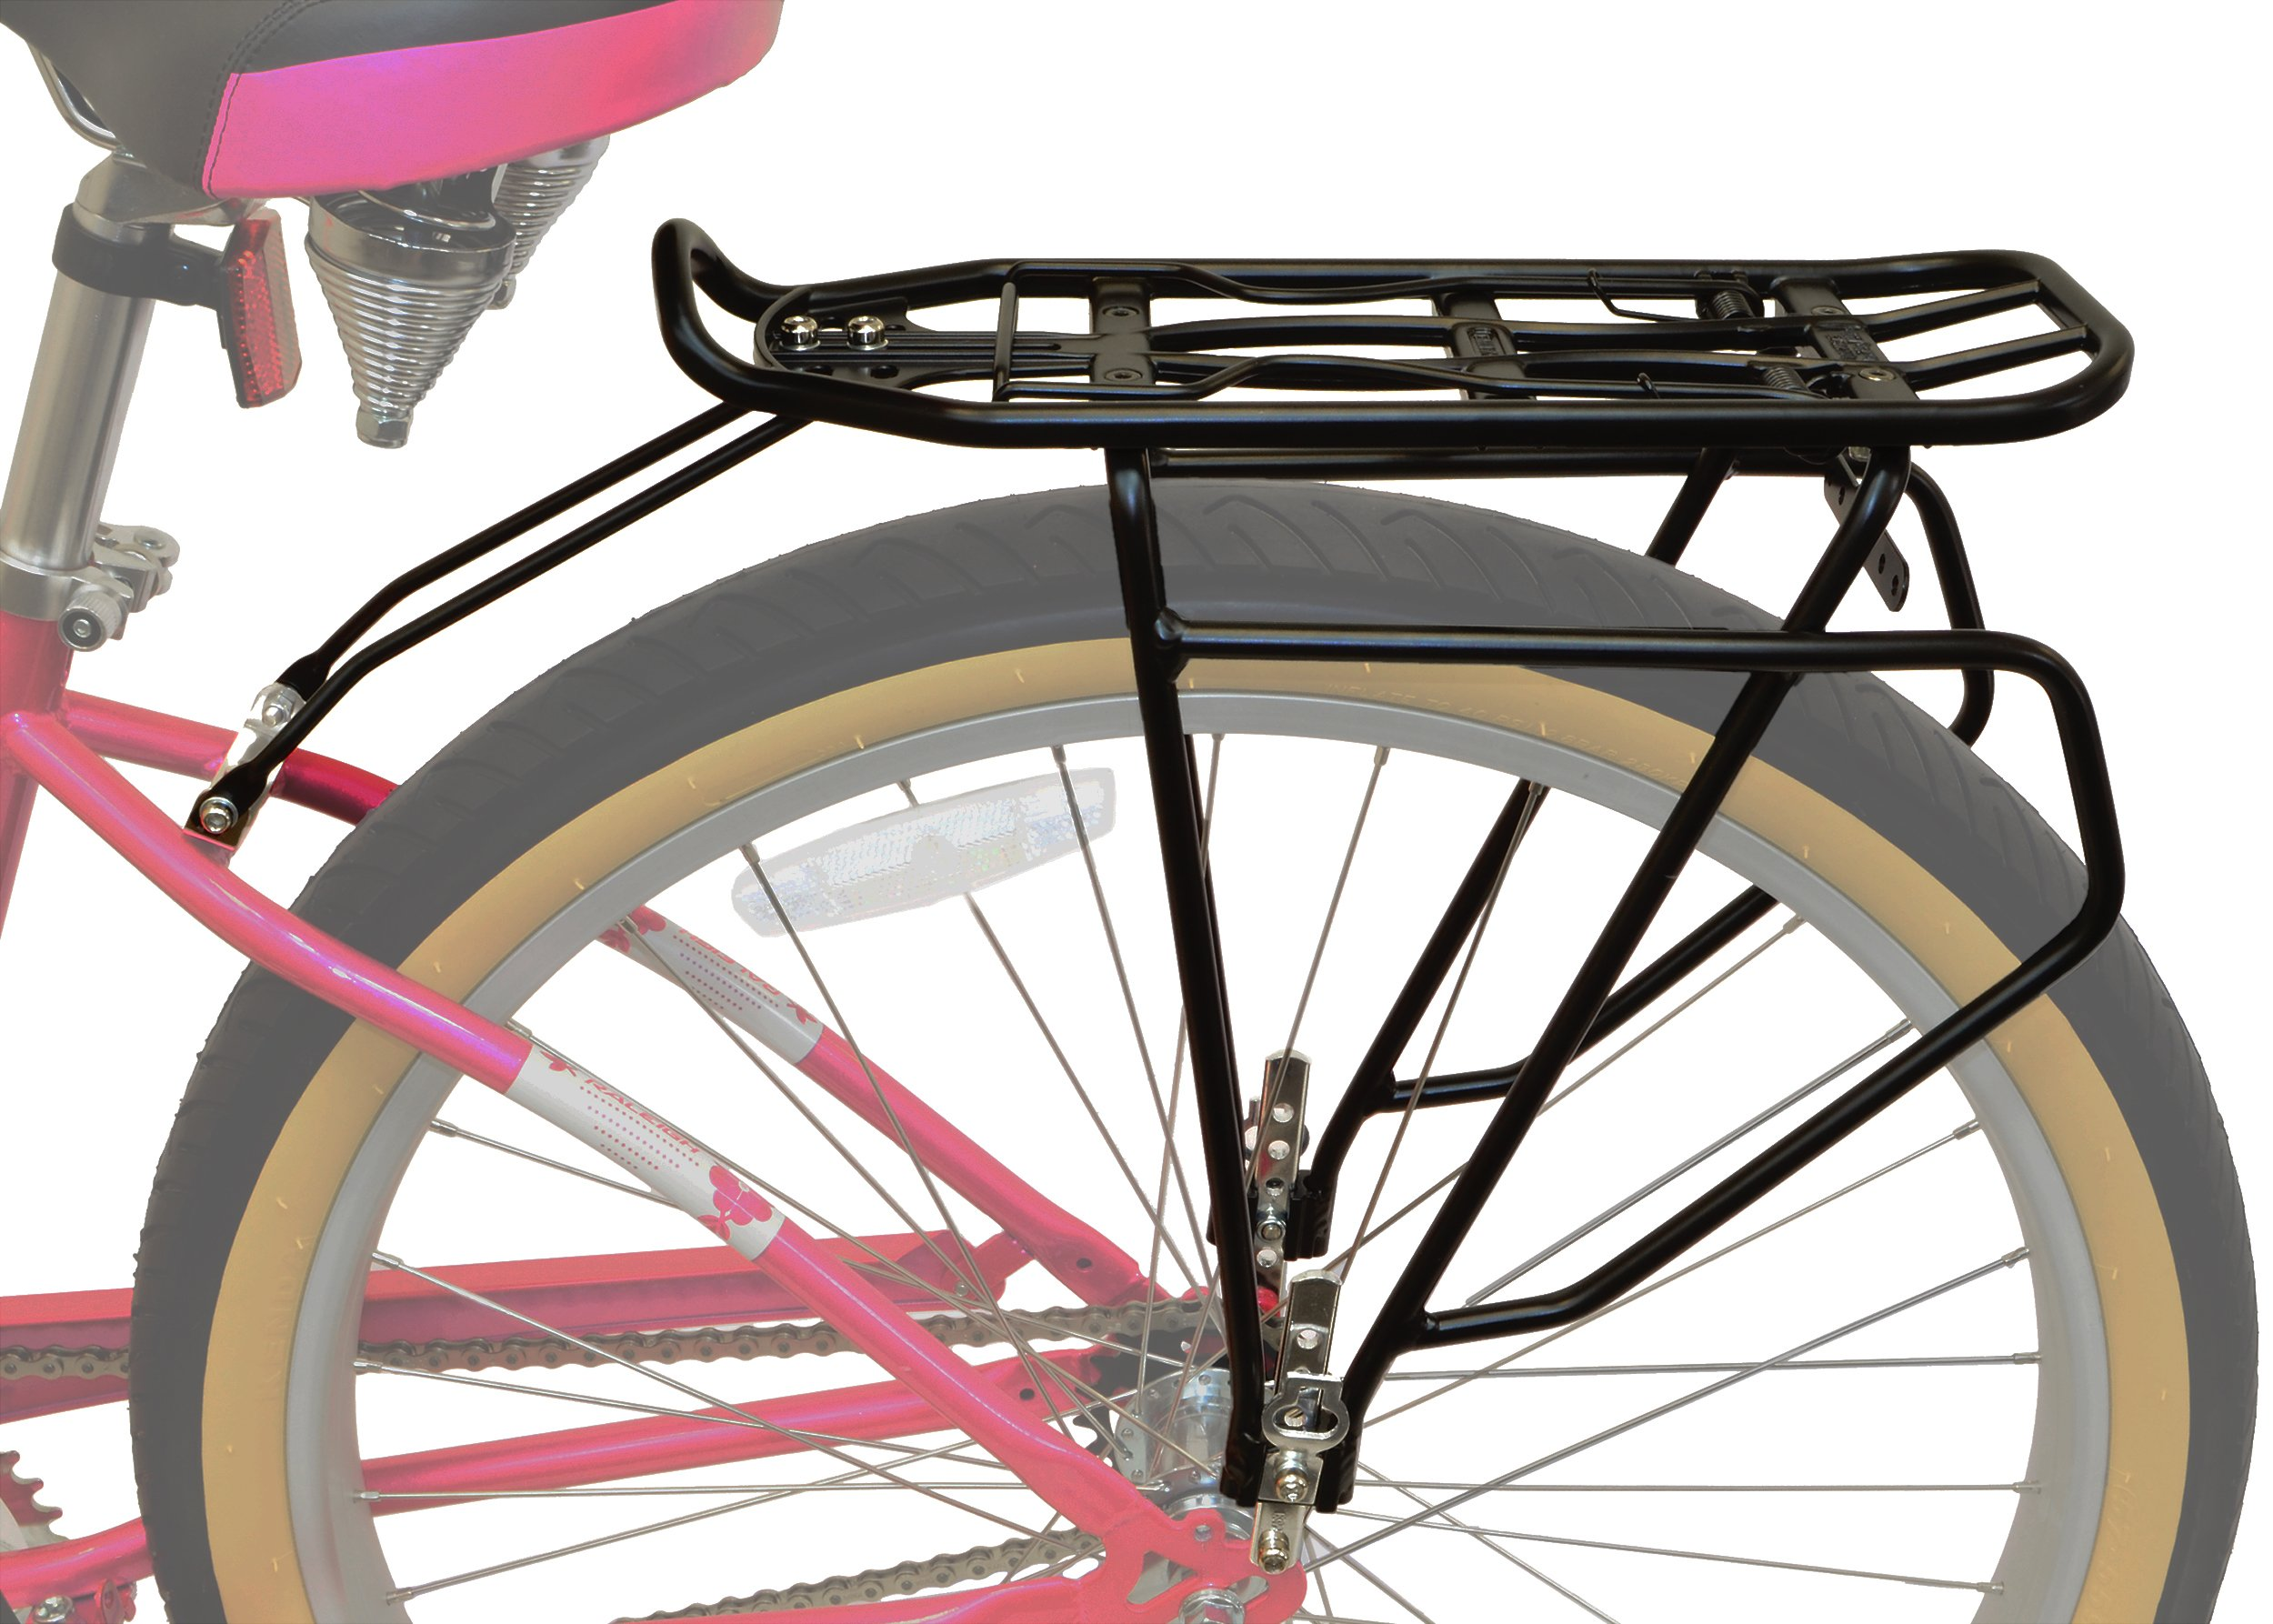 Lumintrail Bicycle Rear Frame Mounted Cargo Rack for Non-Disc Bikes Height Adjustable Commuter Carrier